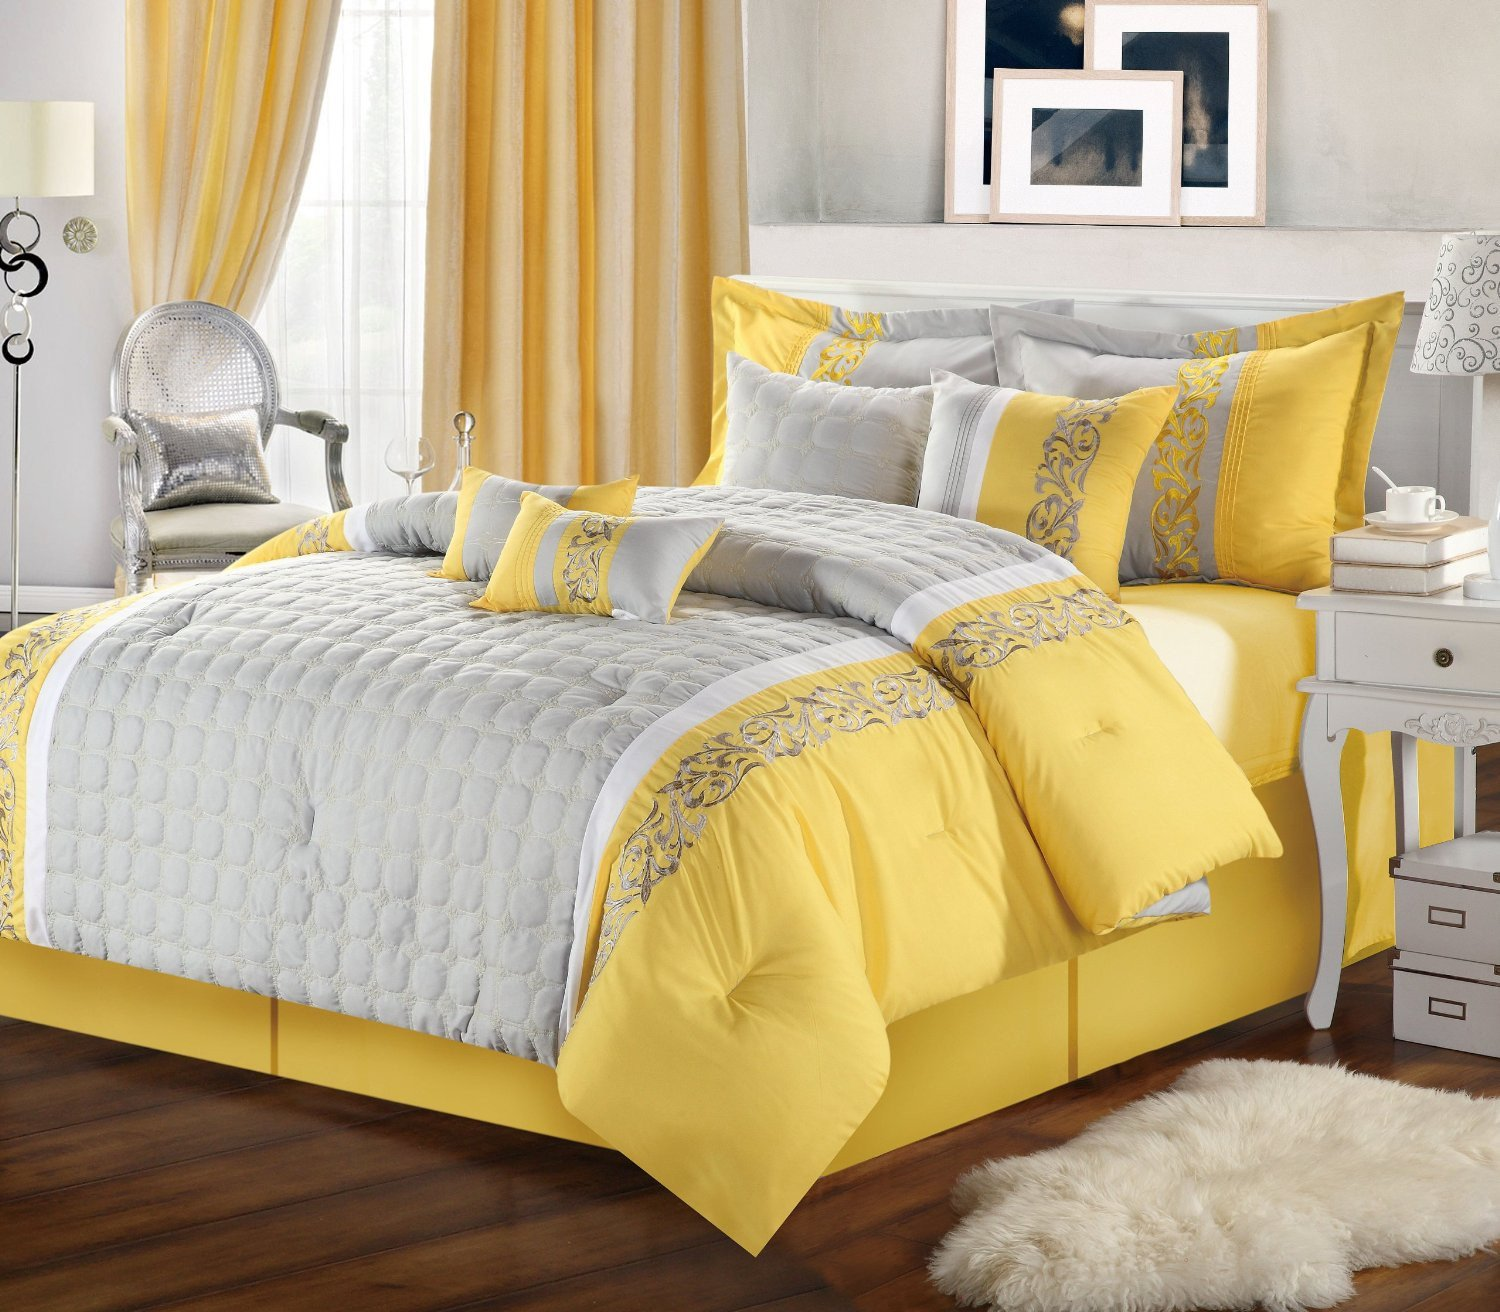 Gray and Yellow Bedroom Decor New Gray and Yellow Bedroom with Calm Nuance Traba Homes